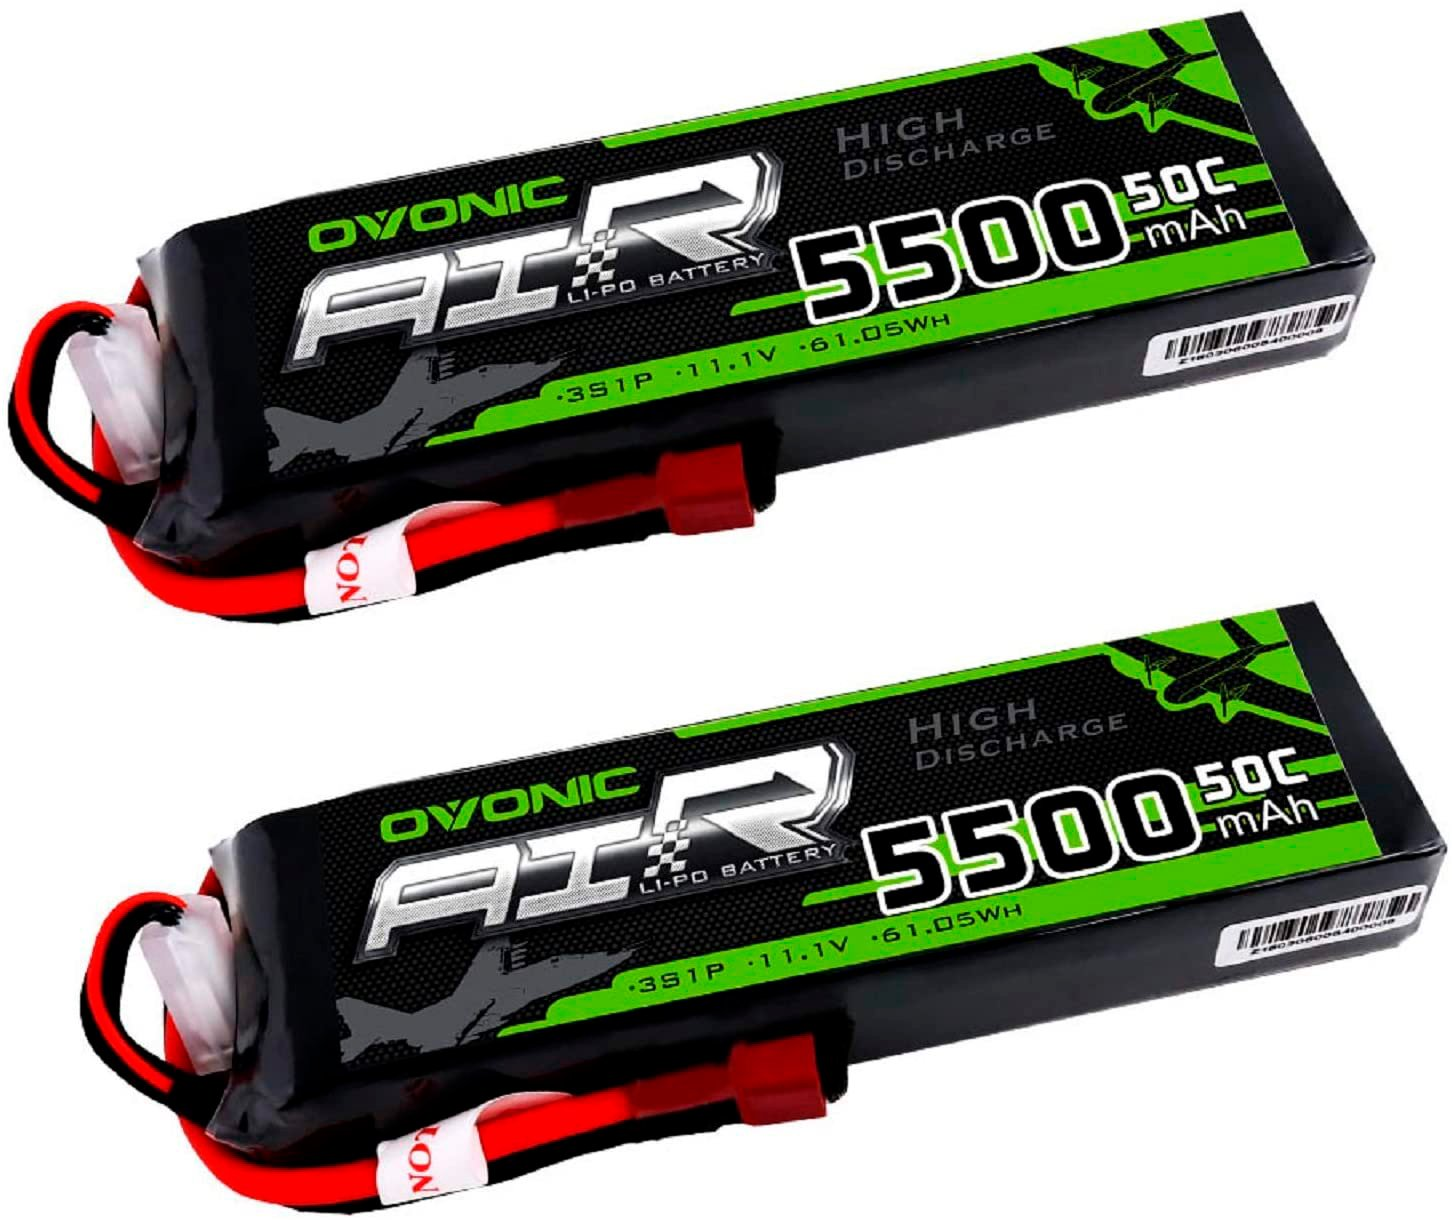 Ovonic 3S 5500mAh Double Pack review